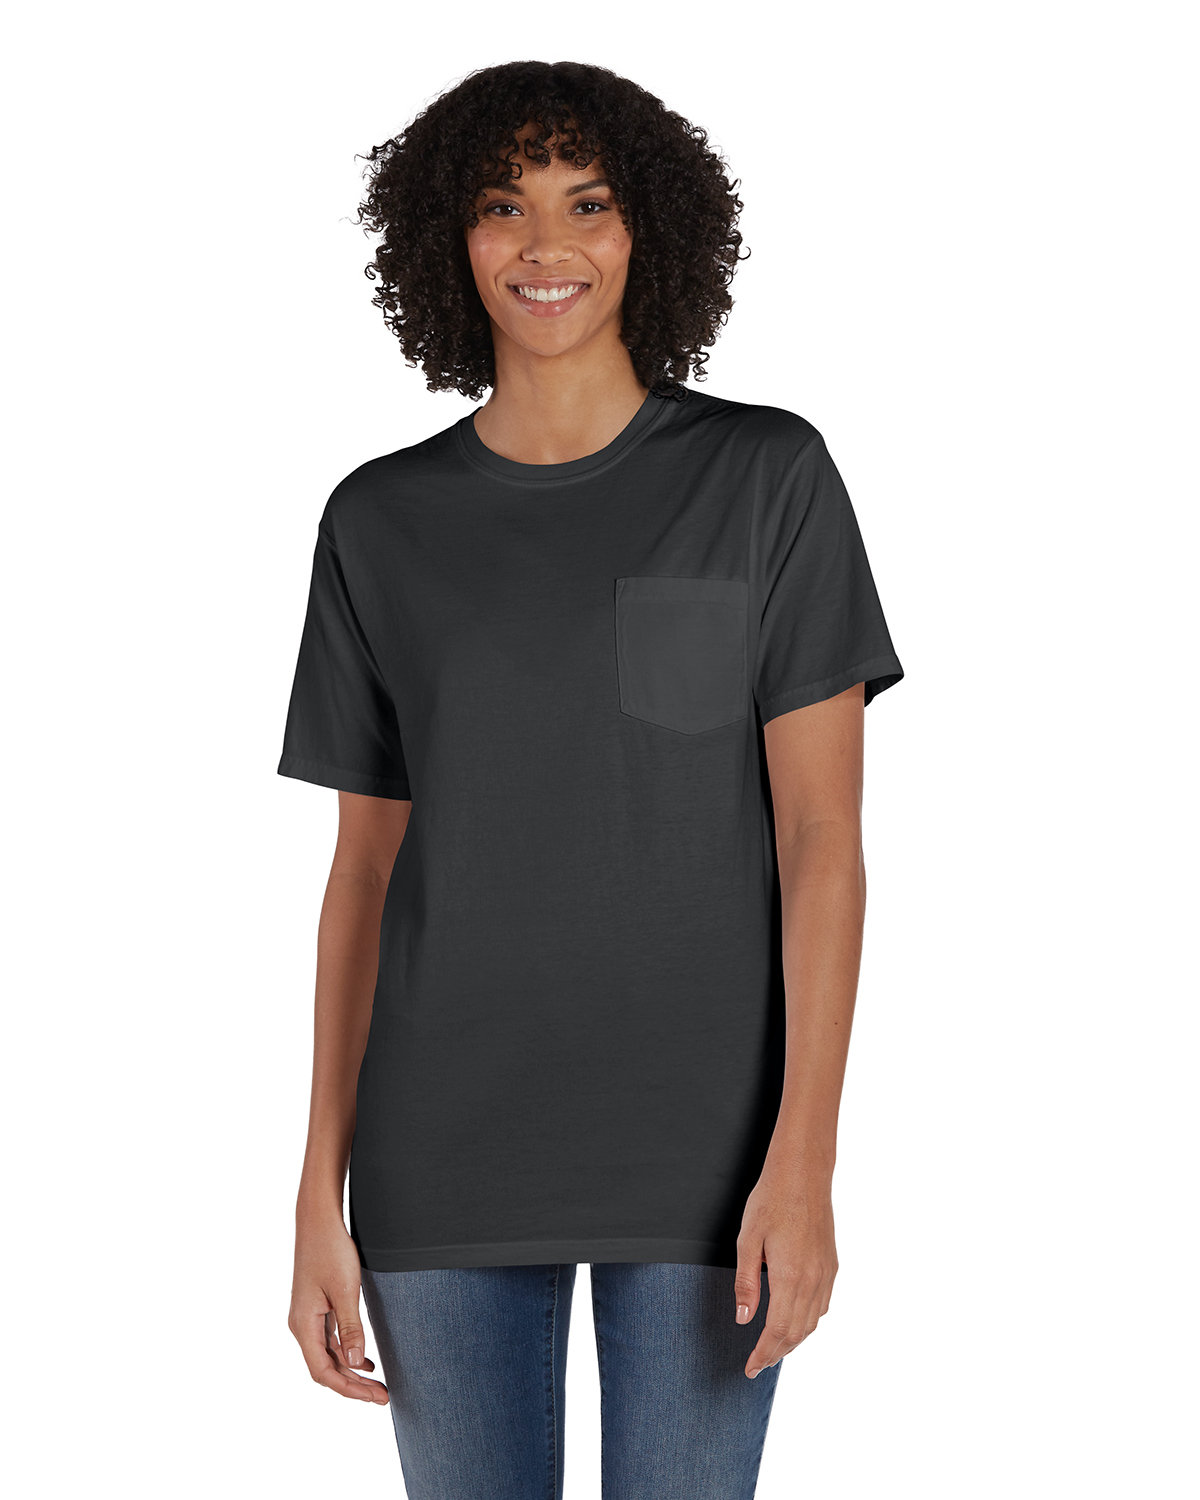 ComfortWash by Hanes Unisex 5.5 oz., 100% Ringspun Cotton Garment-Dyed T-Shirt with Pocket NEW RAILROAD